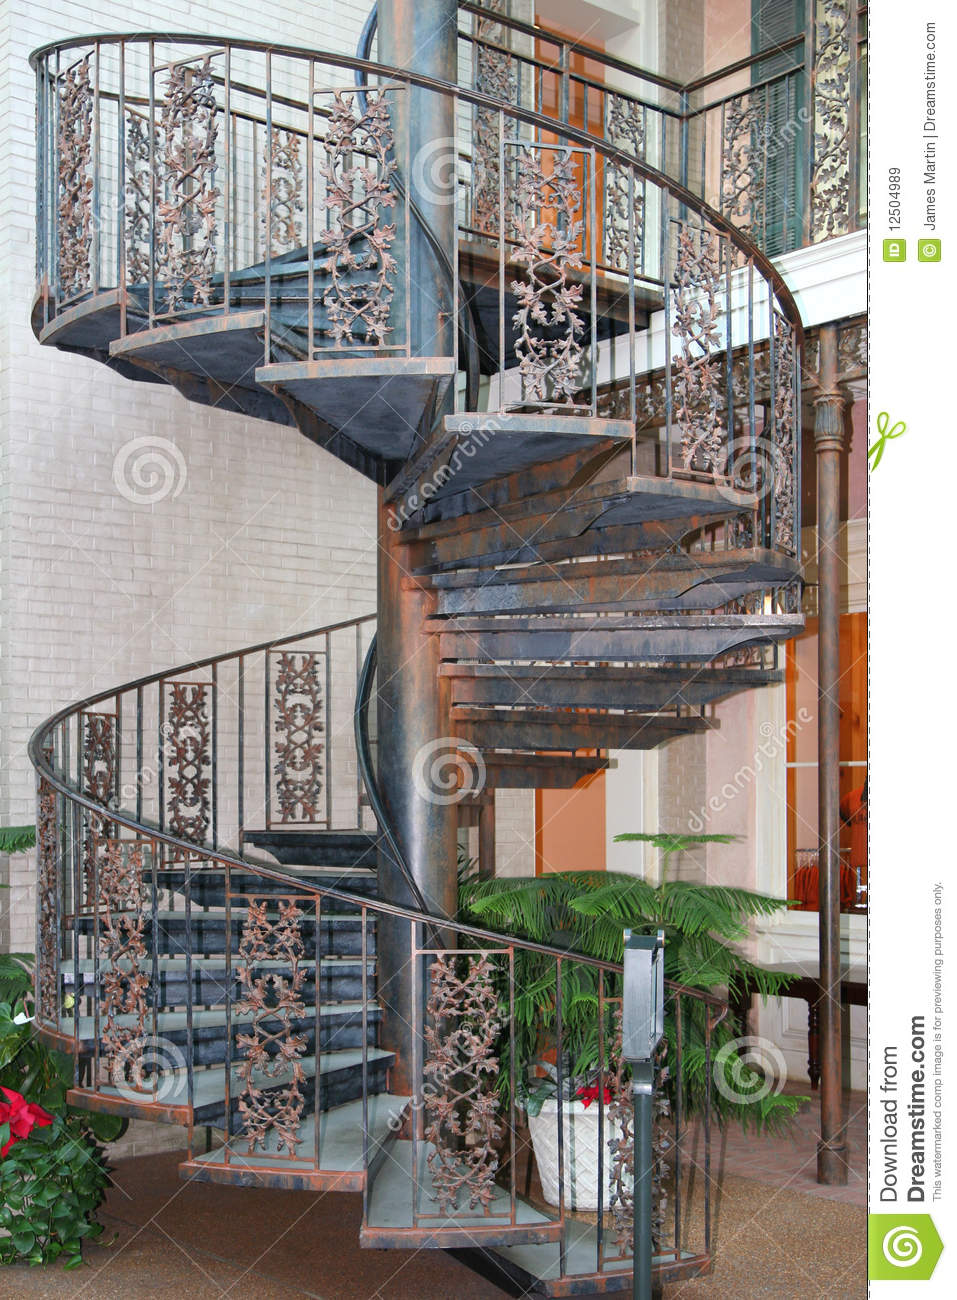 Outdoor Spiral Staircase Stock Image Image Of House 12504989